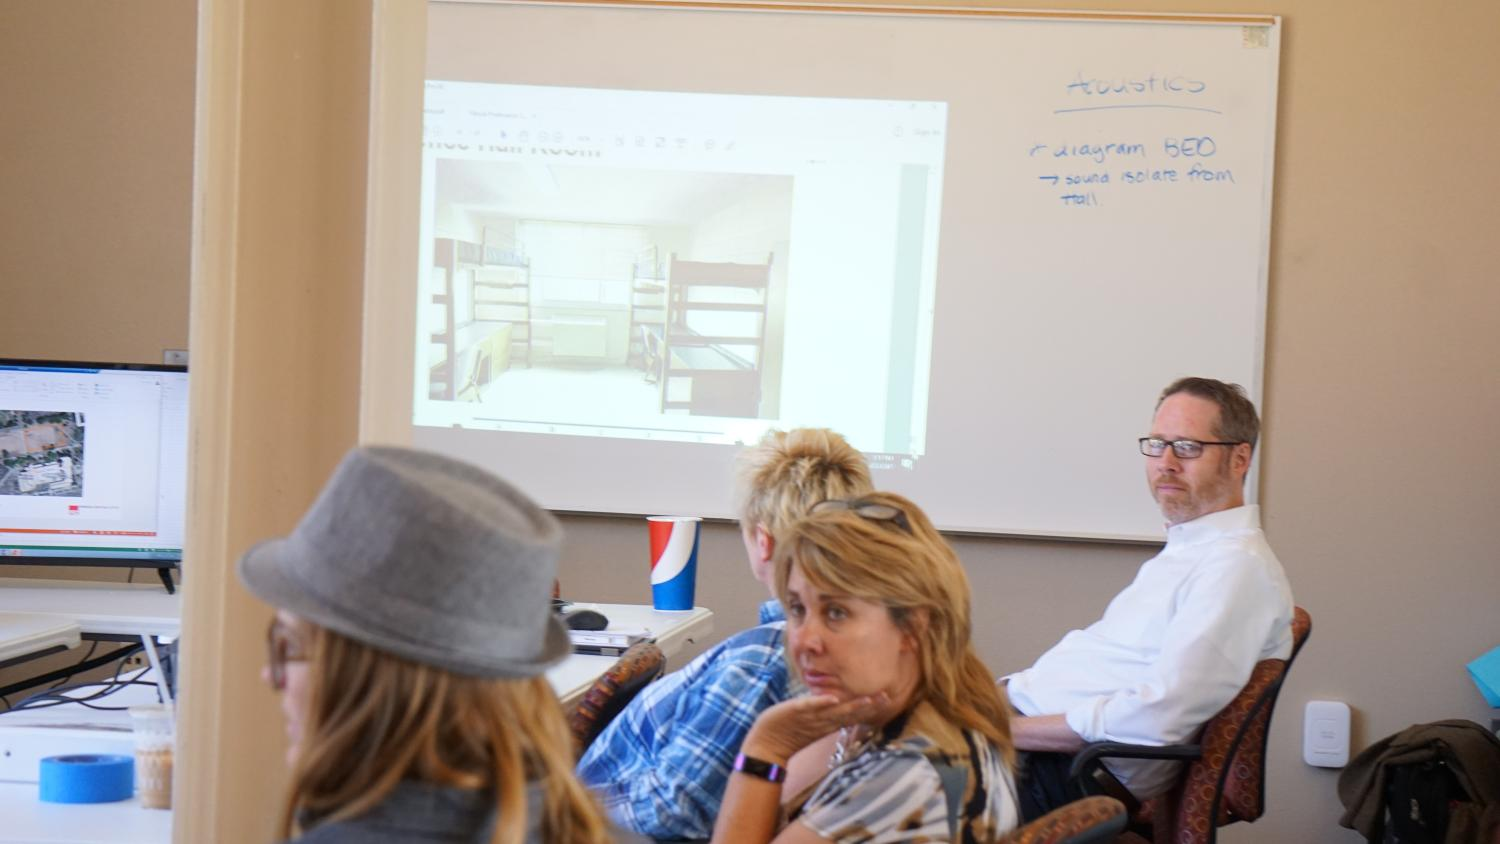 Discussions over the new suite-style residence hall that will be built on the old Monagle Hall site.